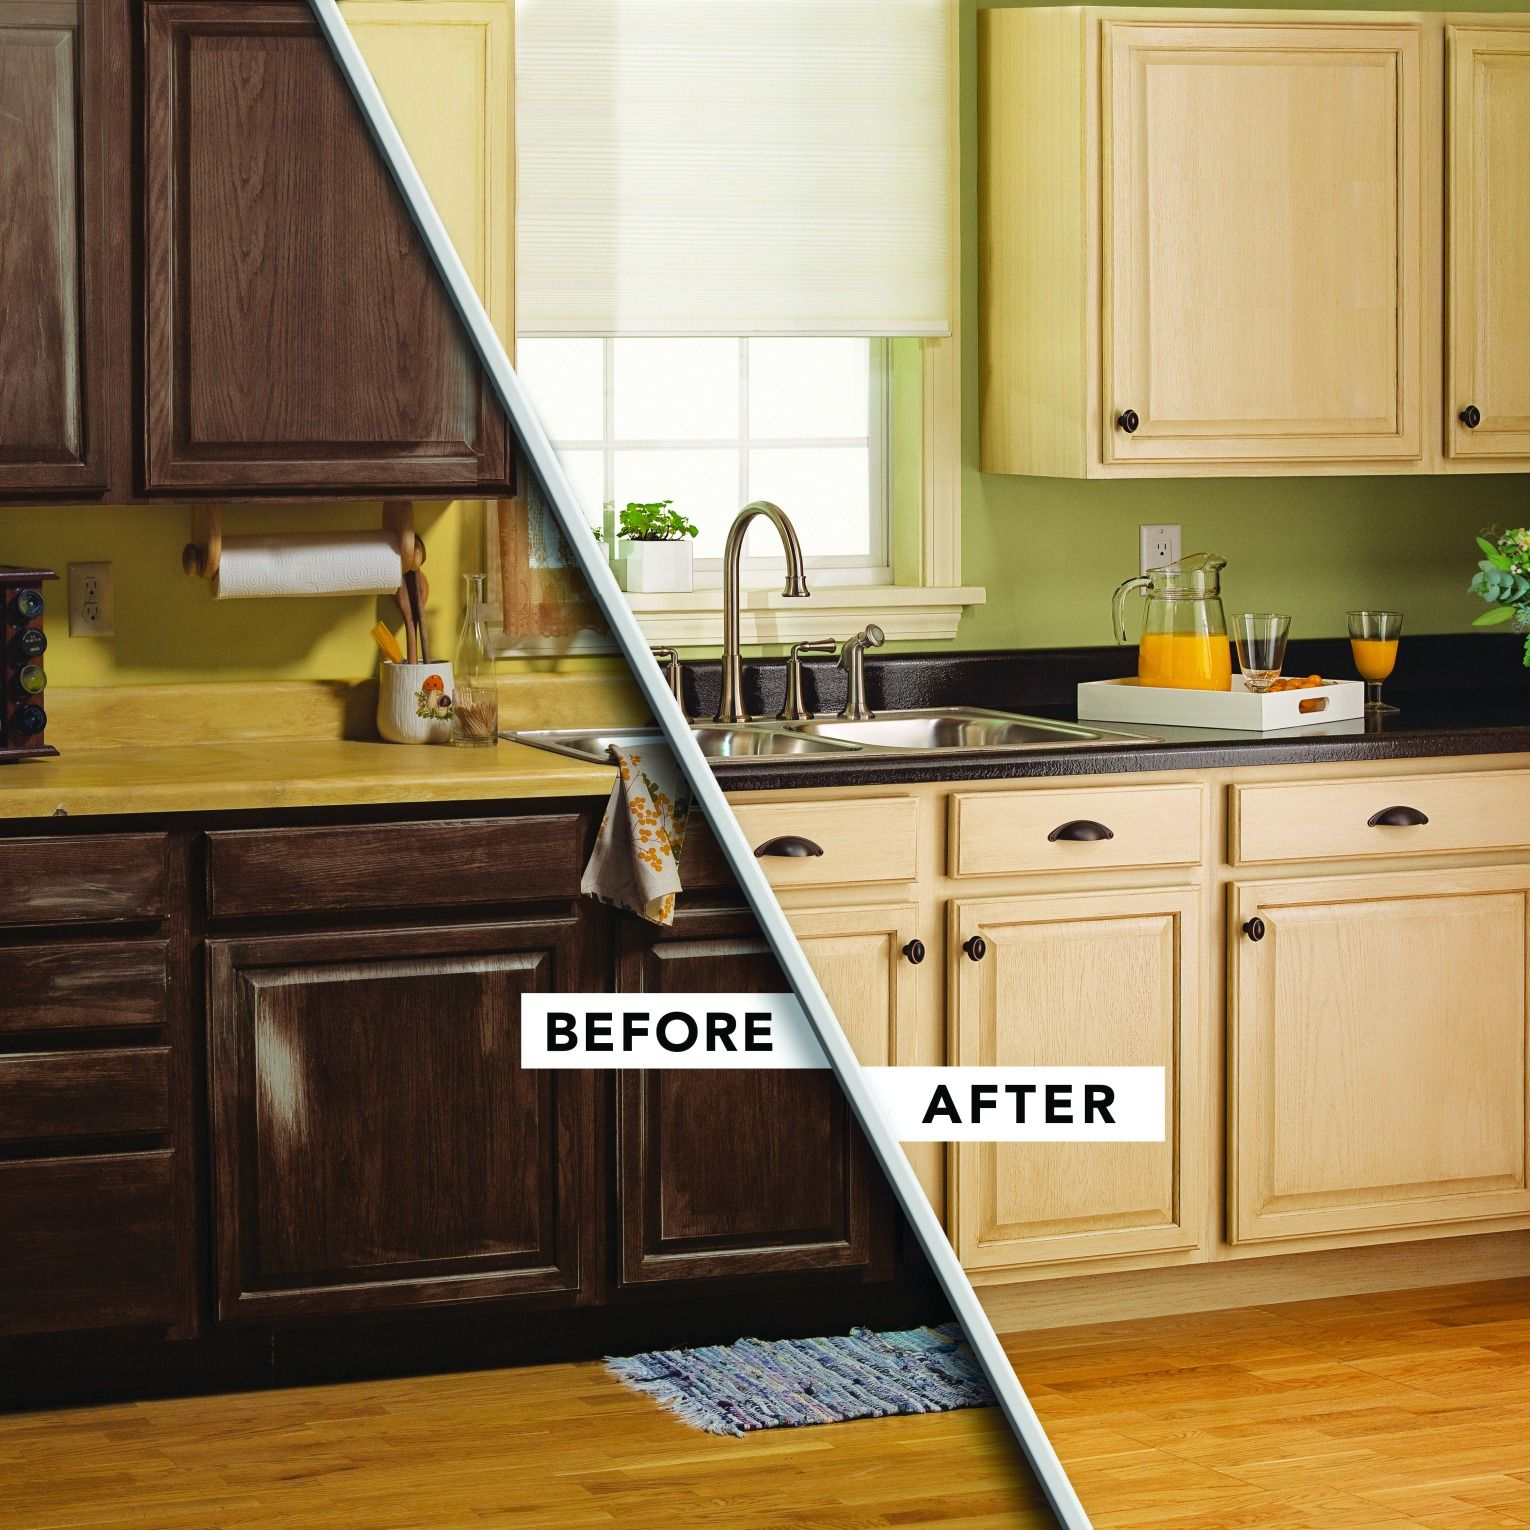 Painting Kitchen Cabinets With Rustoleum: Change The Look Of Your Cabinets With A Rust-Oleum